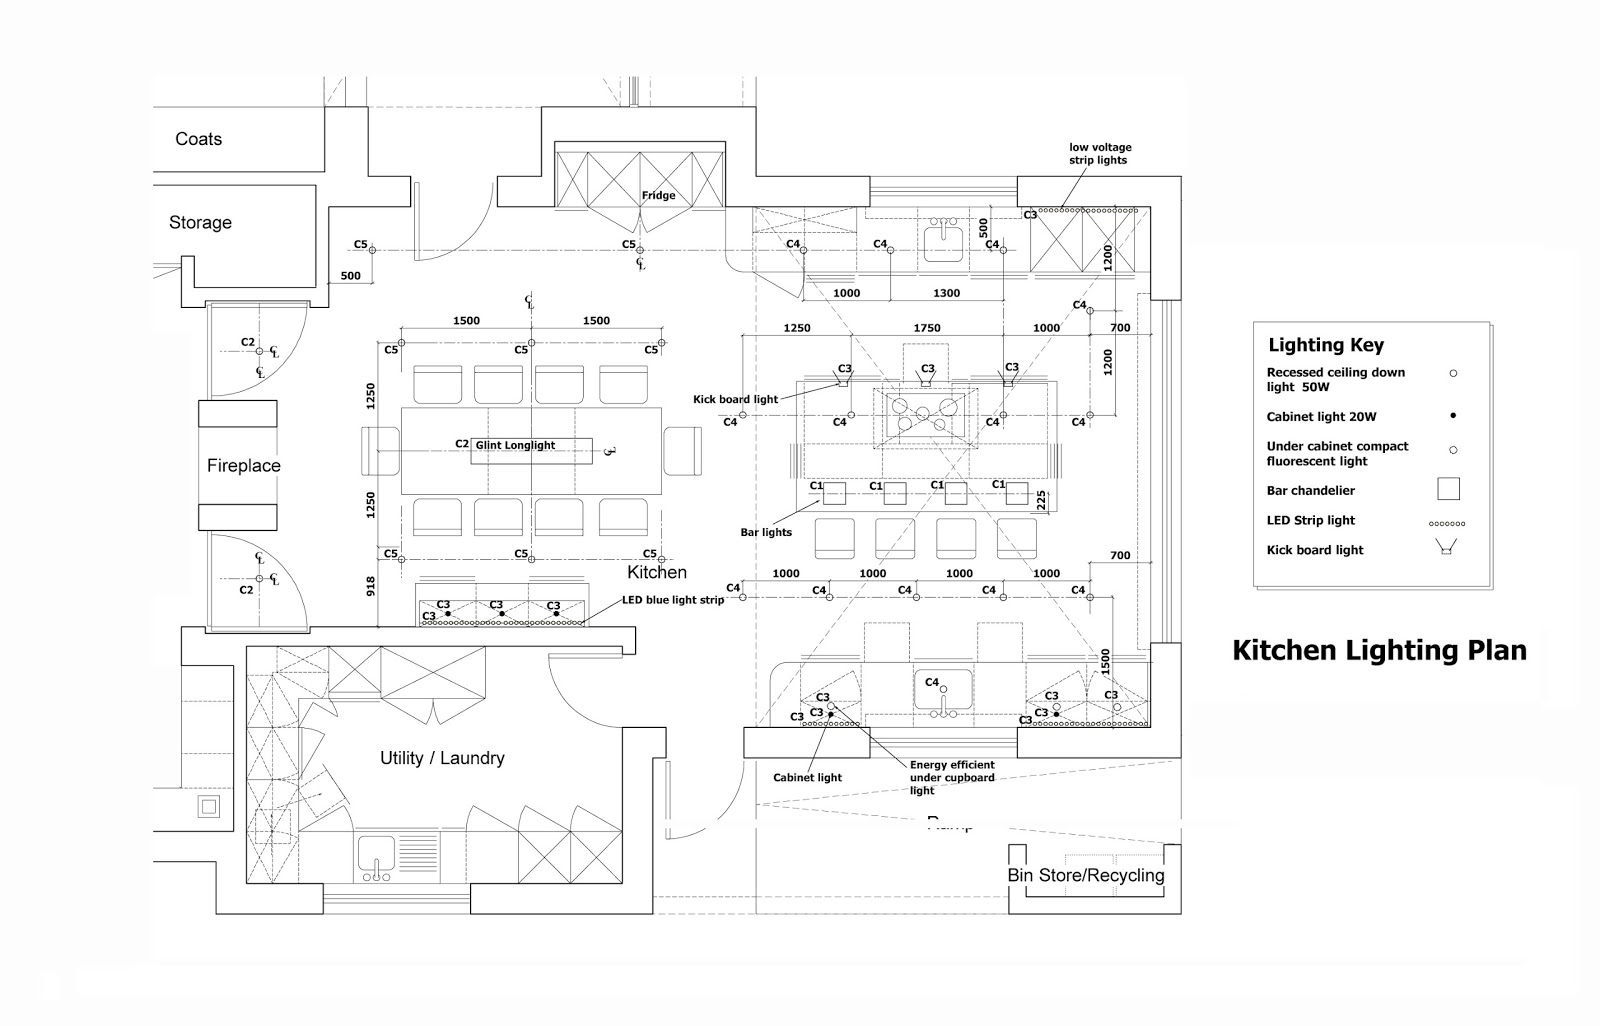 Sangeeta goyal interior designer portfolio for Kitchen lighting plan